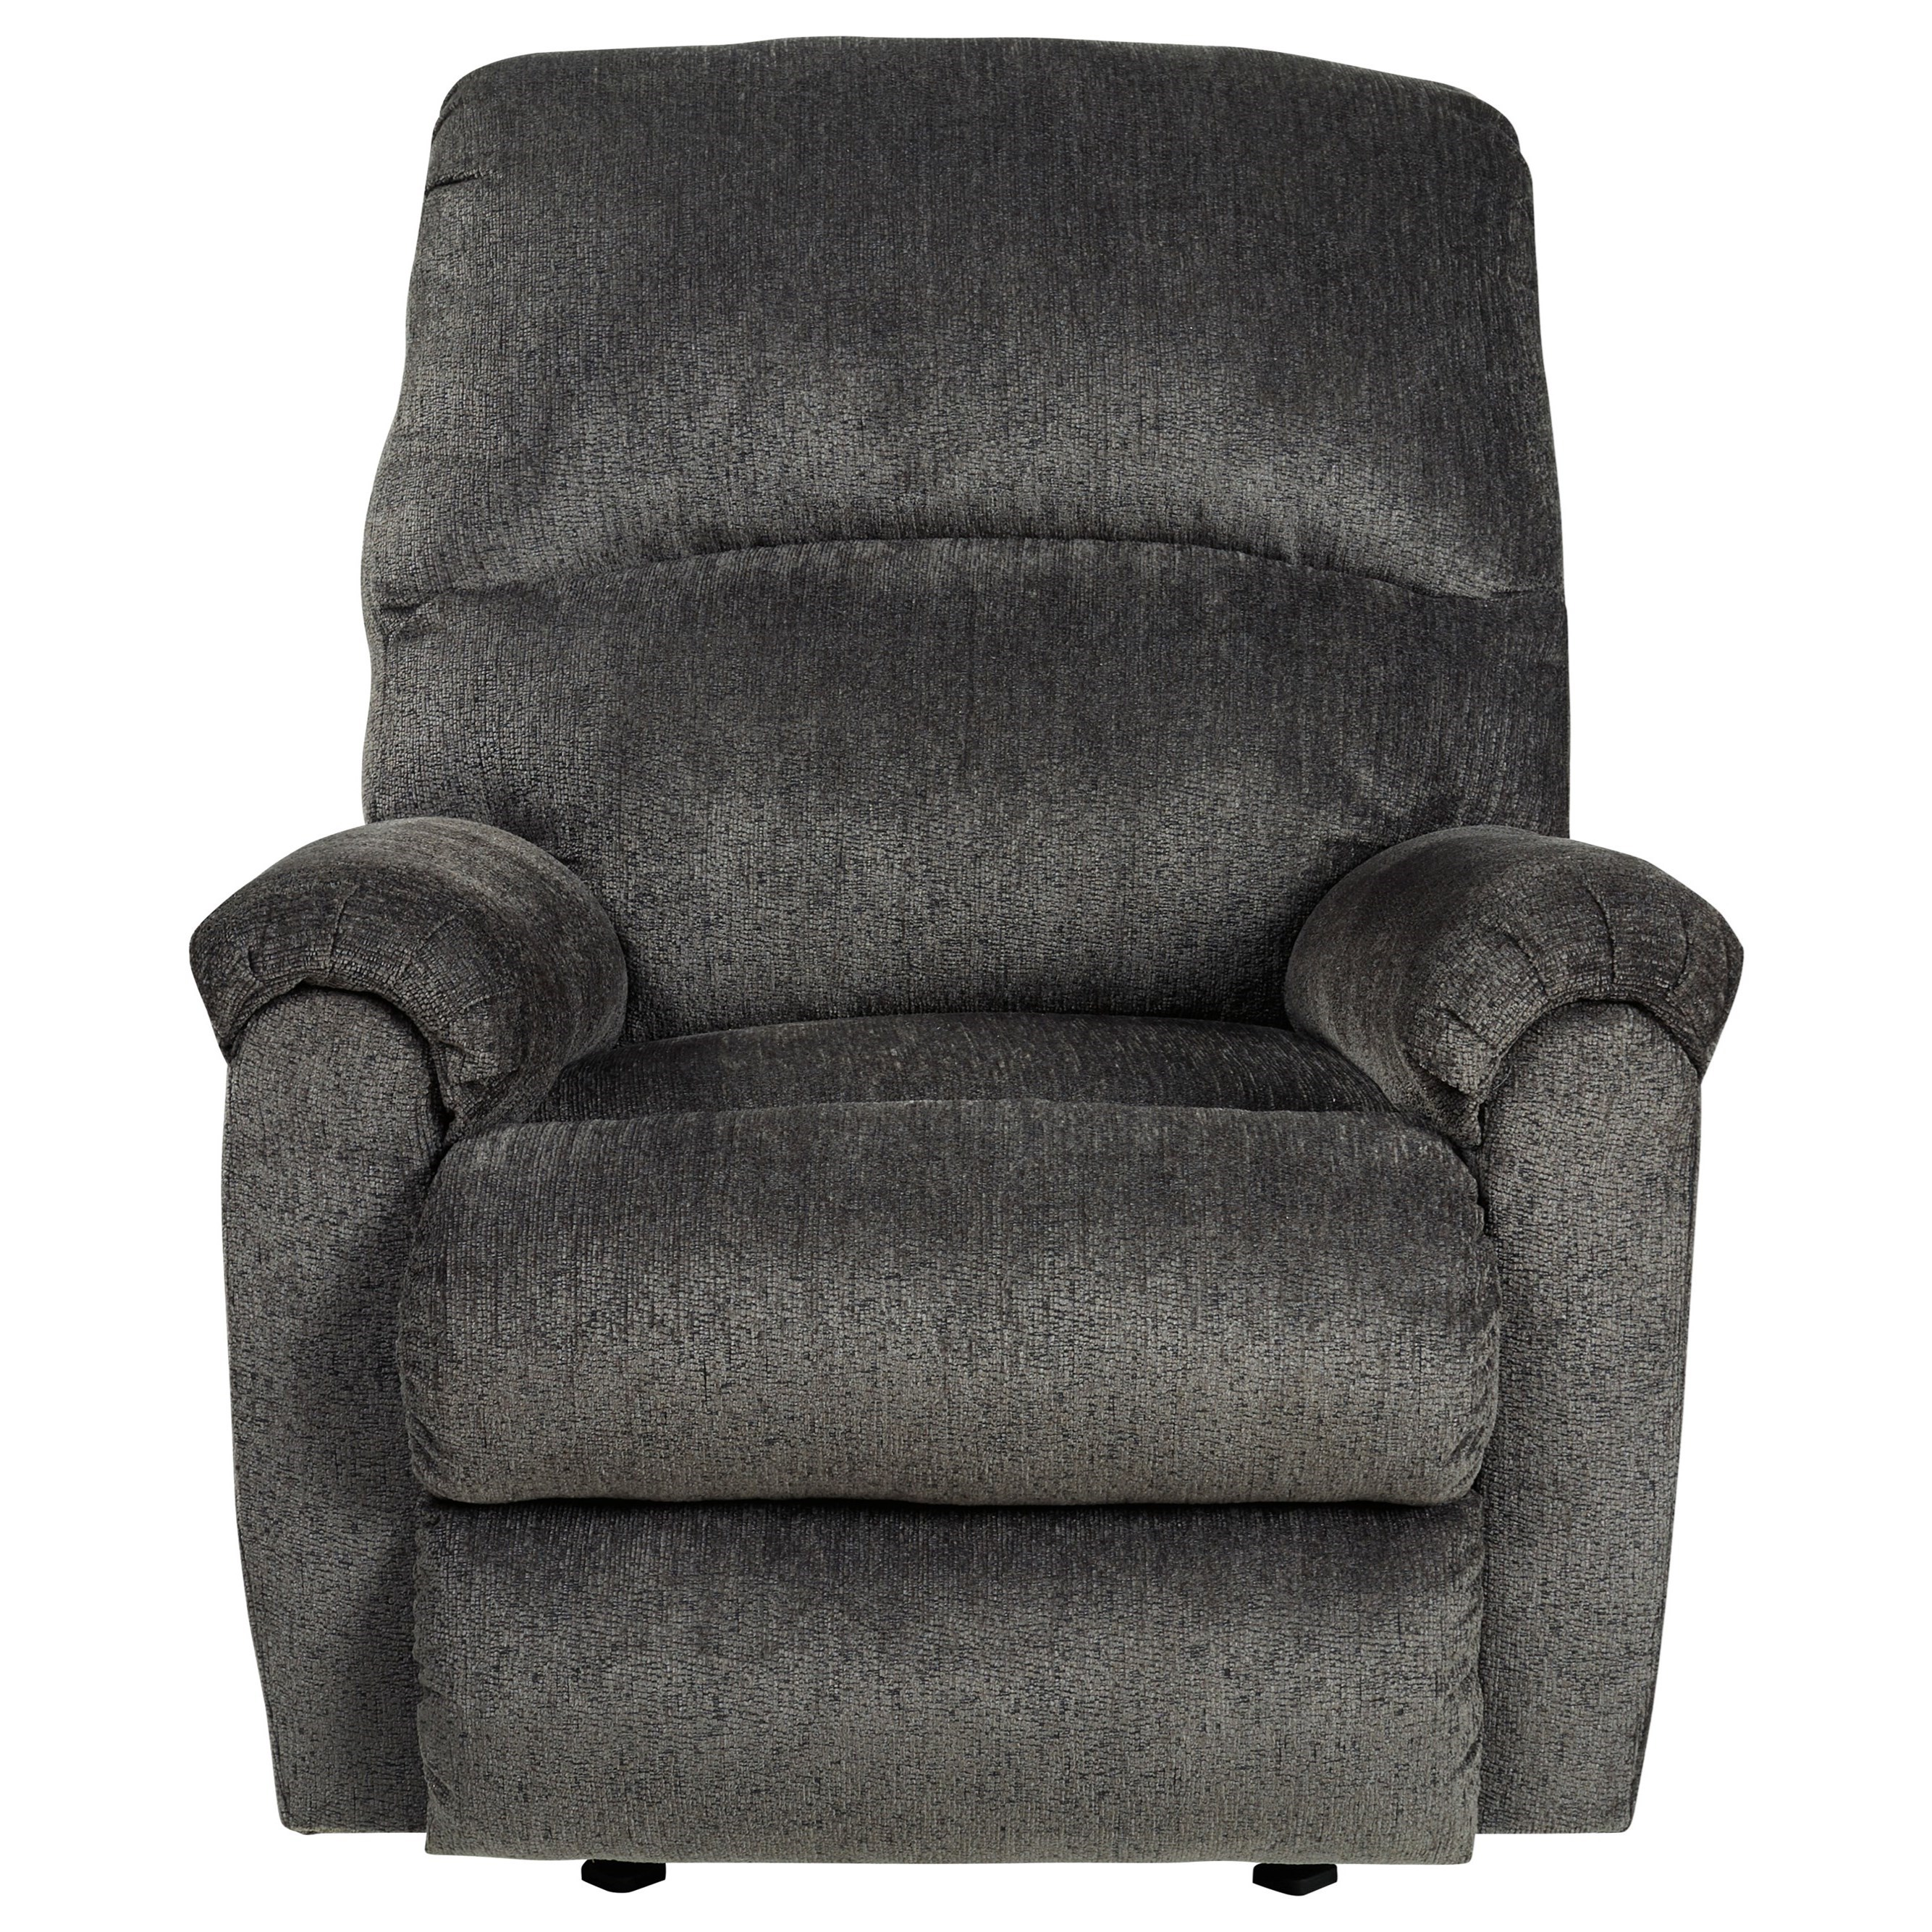 Ballinasloe Rocker Recliner by Signature Design by Ashley at Northeast Factory Direct